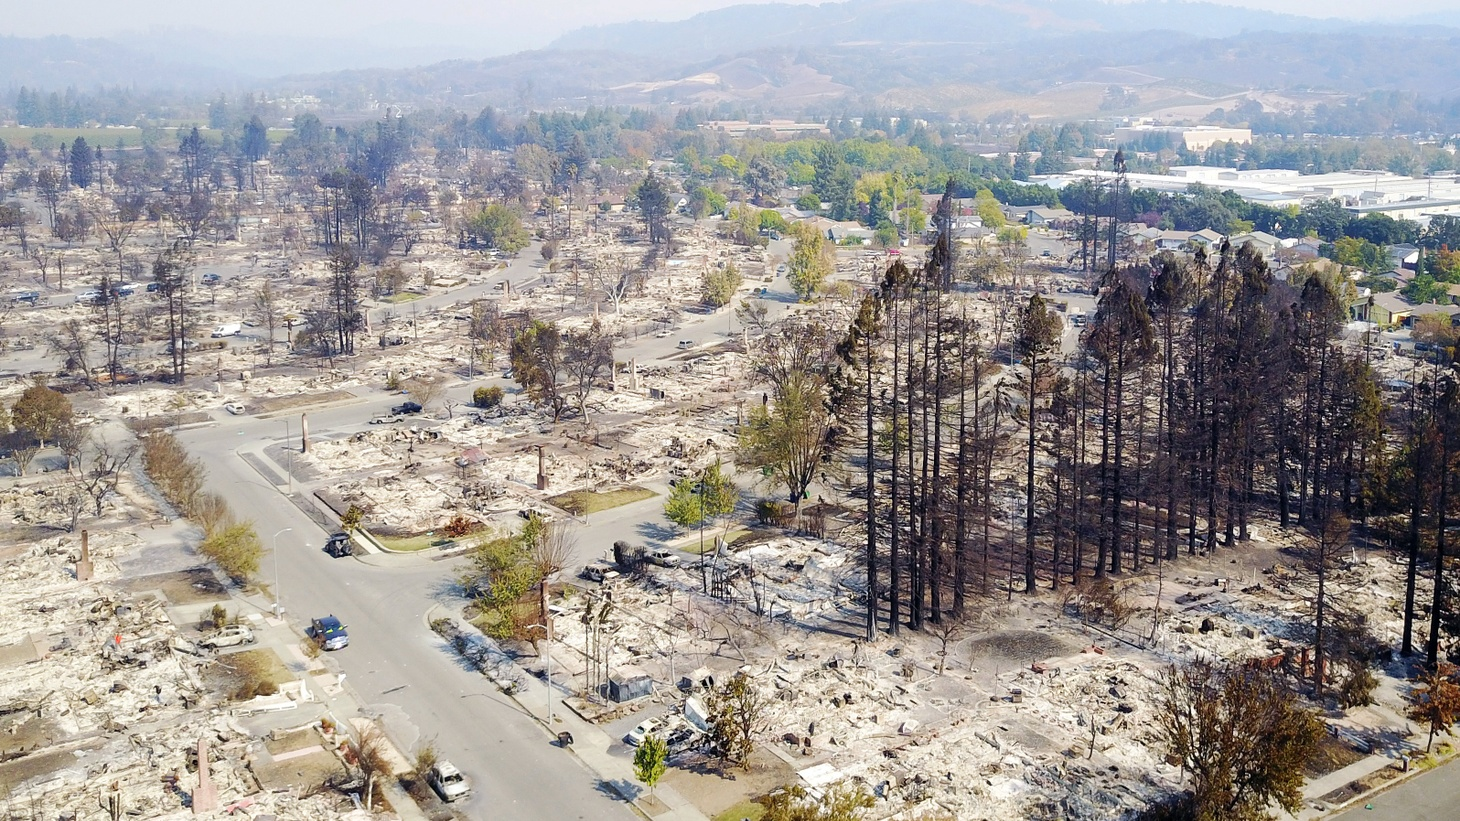 Wildfire is all too familiar in the Golden State, but last week's record-setting blazes in Northern California left behind something new — more property damage over a wider area with more human casualties than ever before. We hear about likely causes, the struggle to clean up and the possibility of prevention.